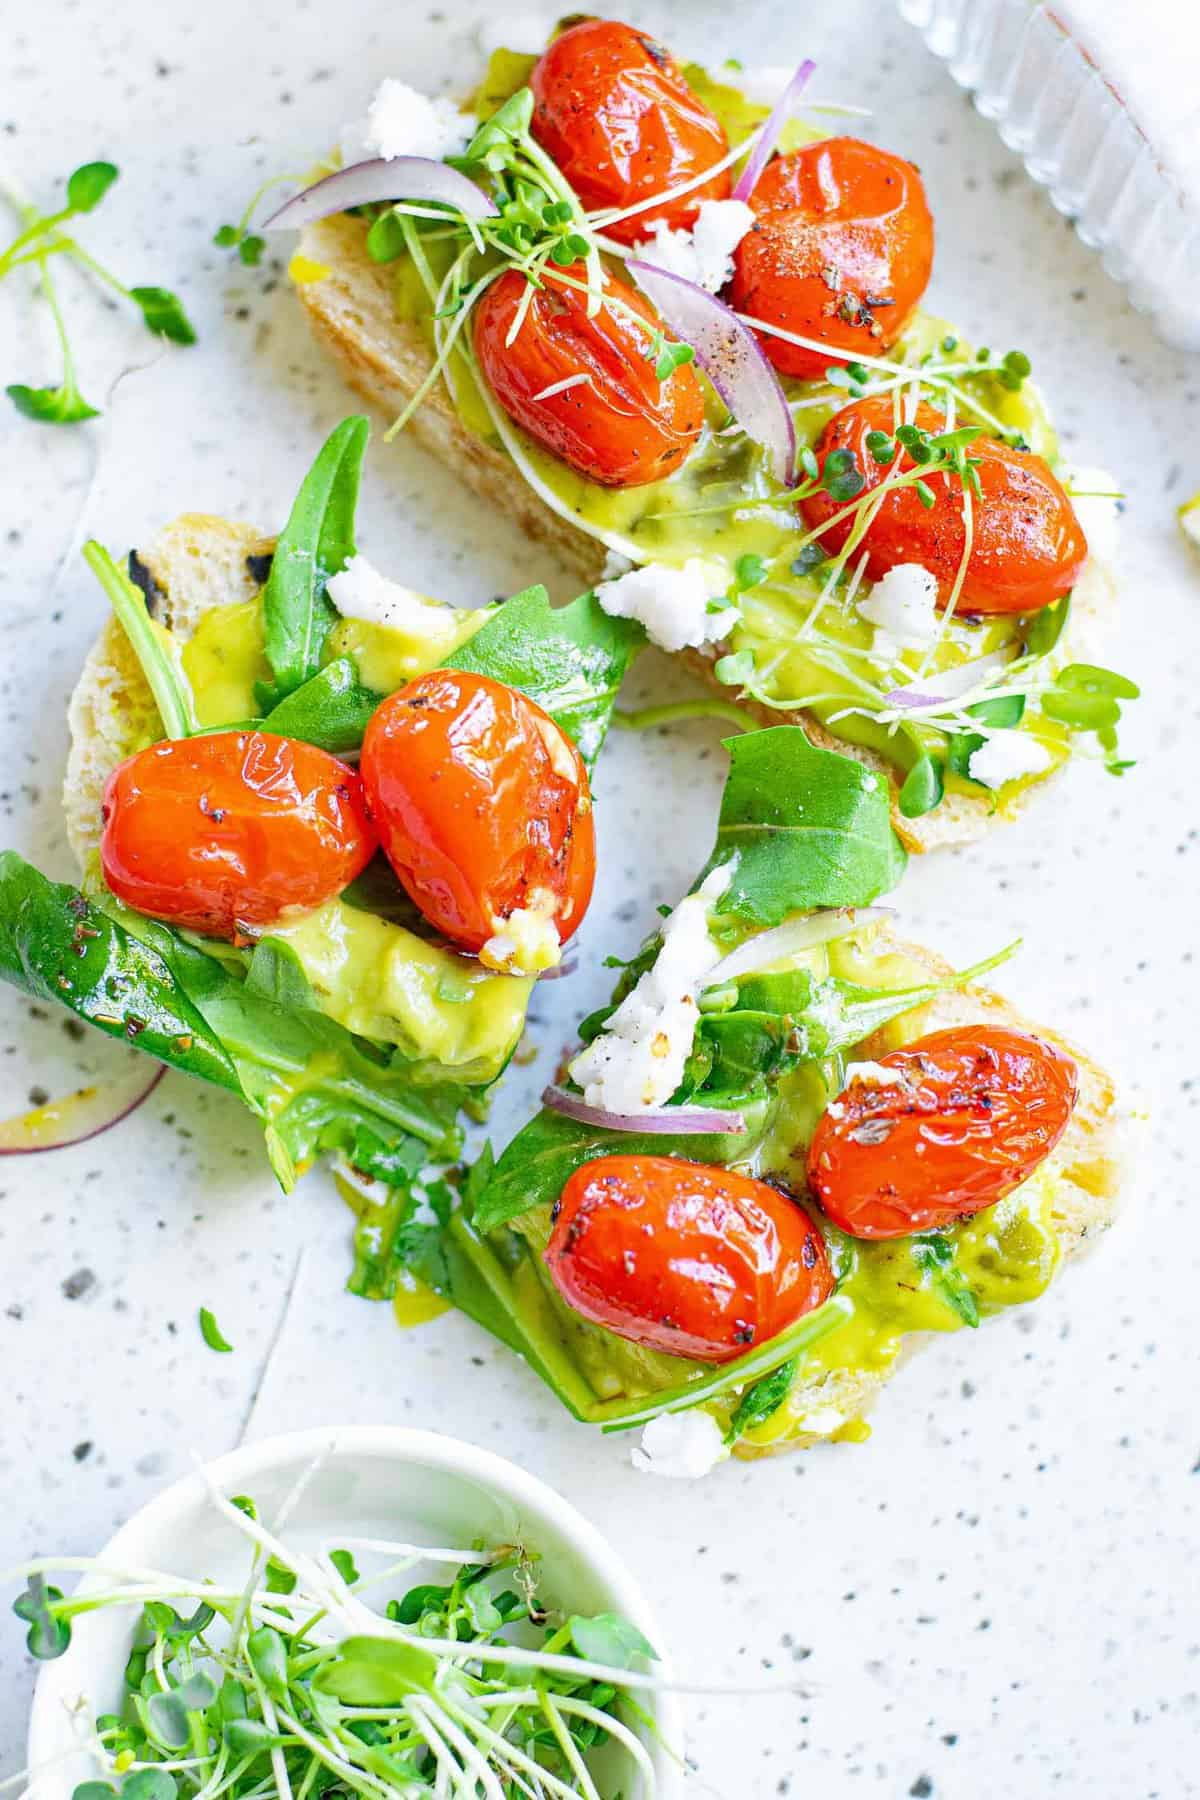 Toast topped with guacamole, tomatoes, feta, and greens.